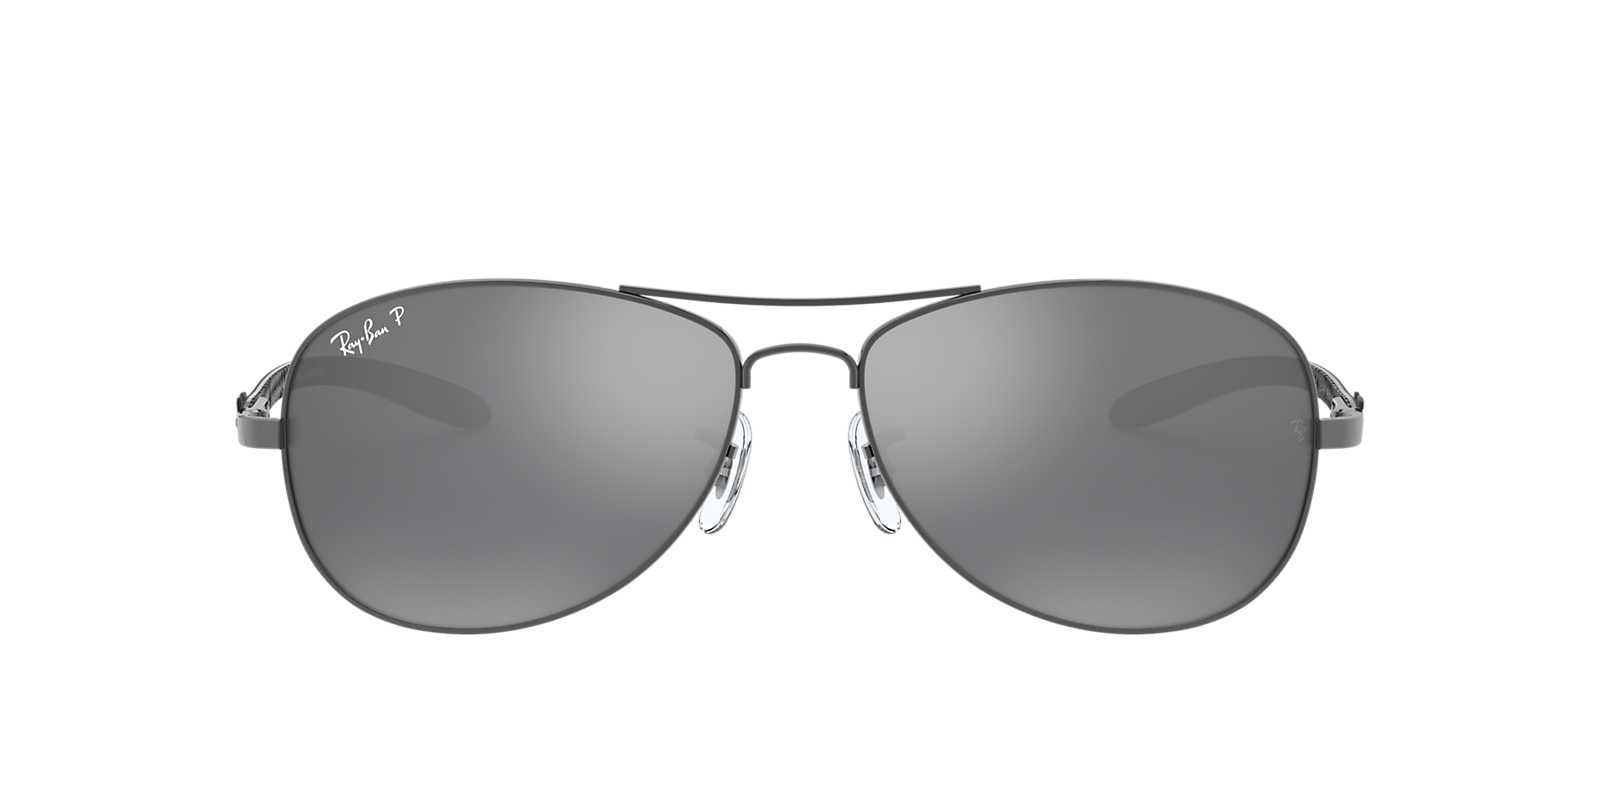 RAY-BAN Gunmetal RB8301 56 Silver polarized lenses 56mm